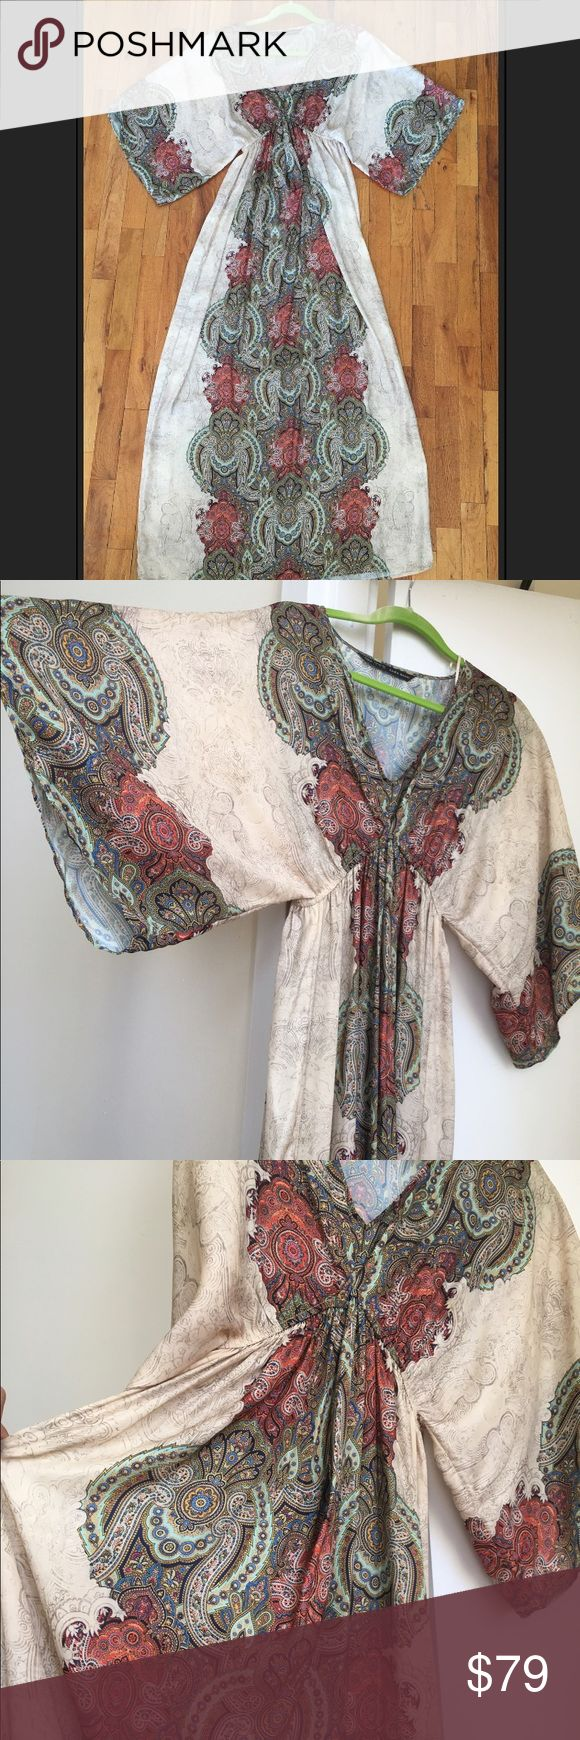 Zara silky caftan *SUMMER SALE* V neck caftan with paisley border - sz S Zara Dresses Maxi